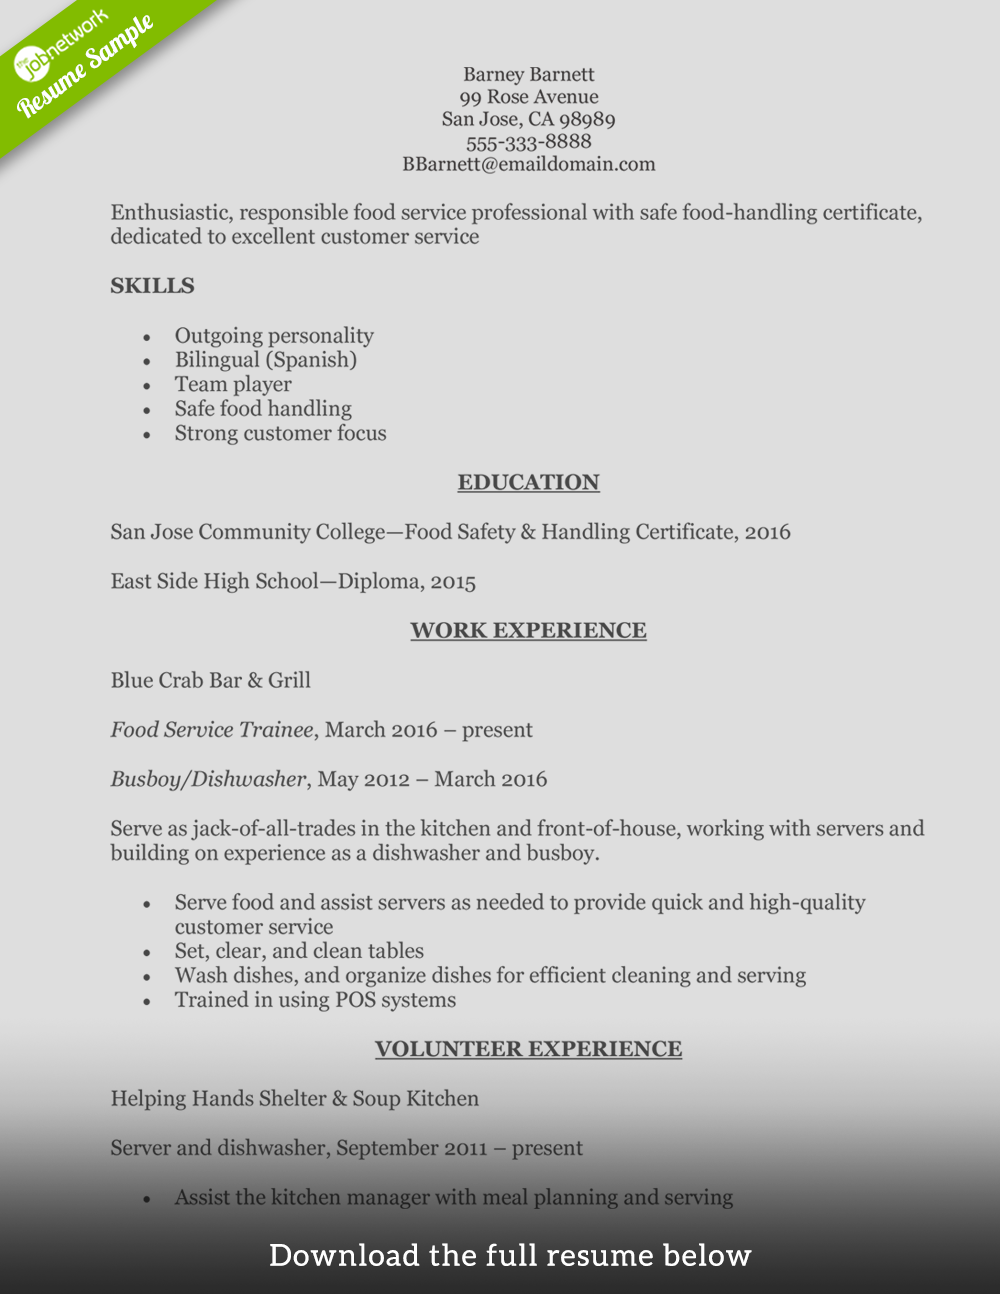 Food Service Resume Entry Level  Food Resume